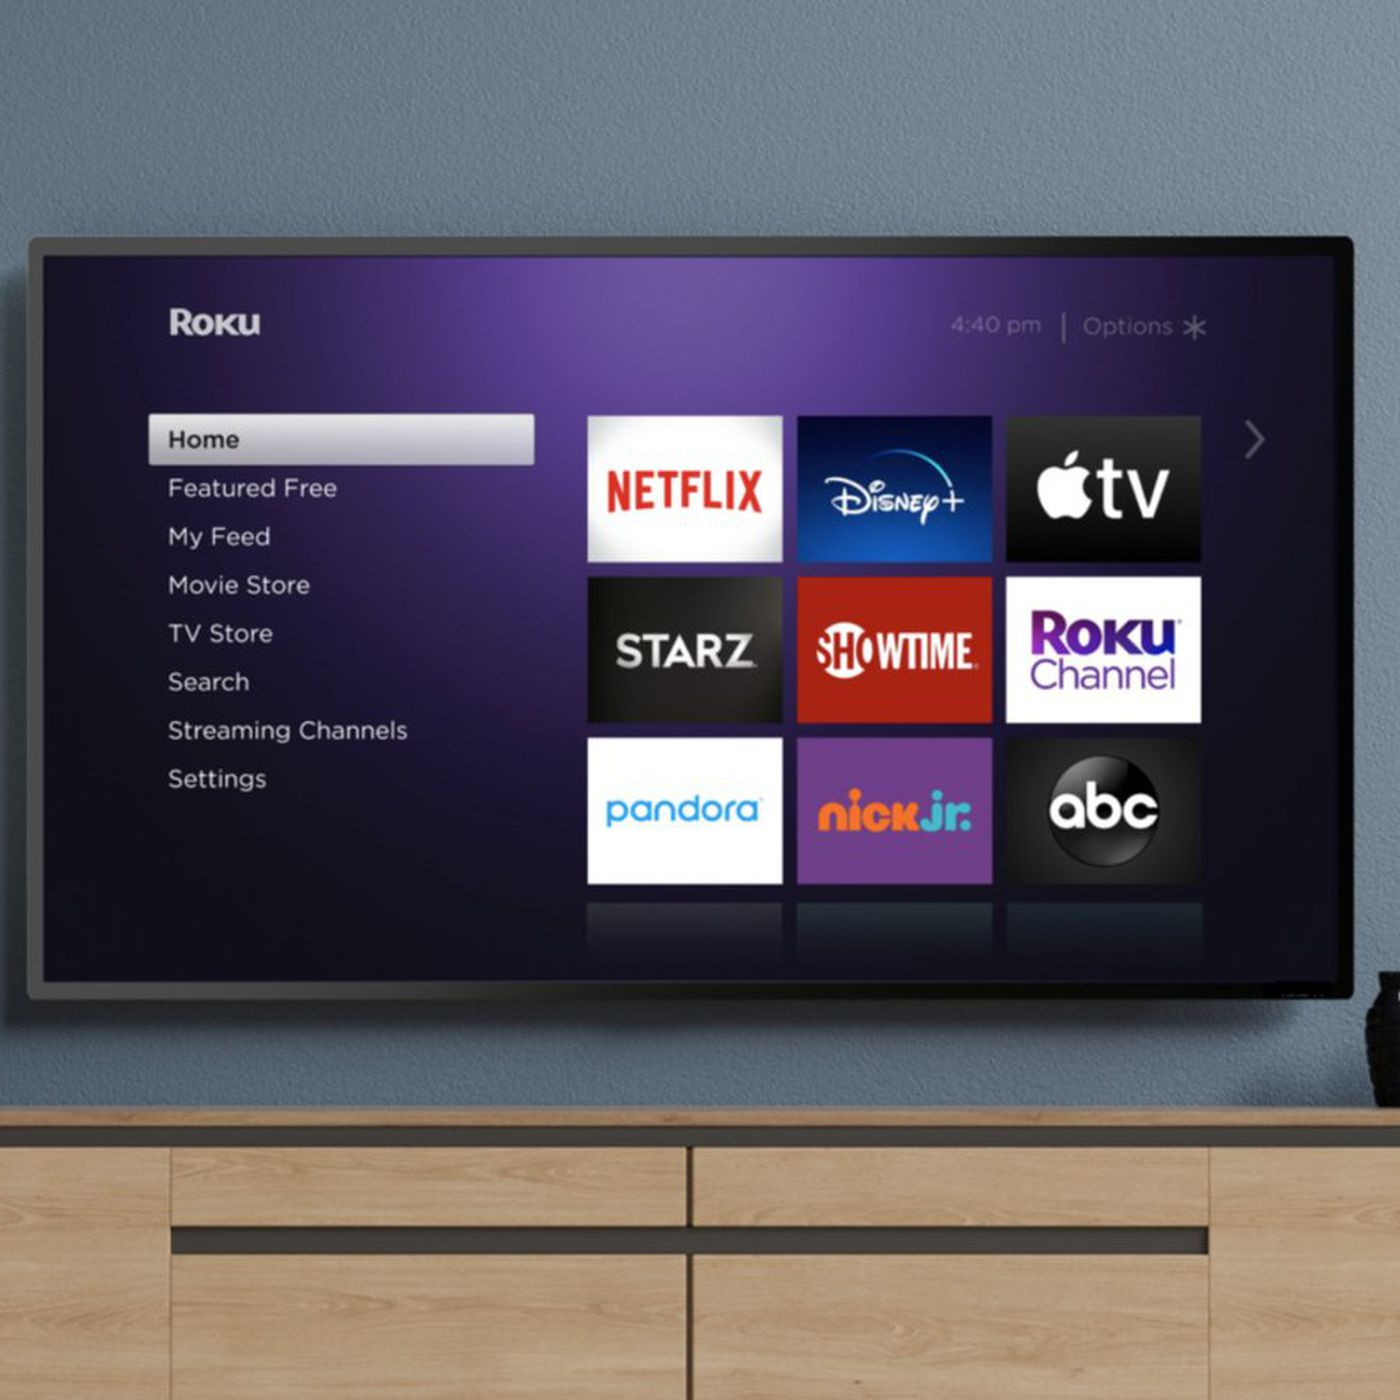 Roku is a huge force in streaming, and a hurdle for HBO Max - The Verge